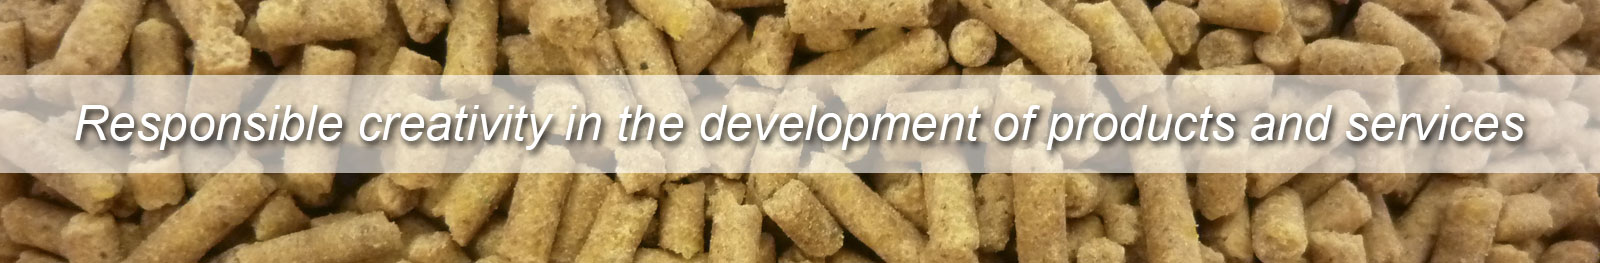 Responsible creativity in the development of products and services - Biofarma